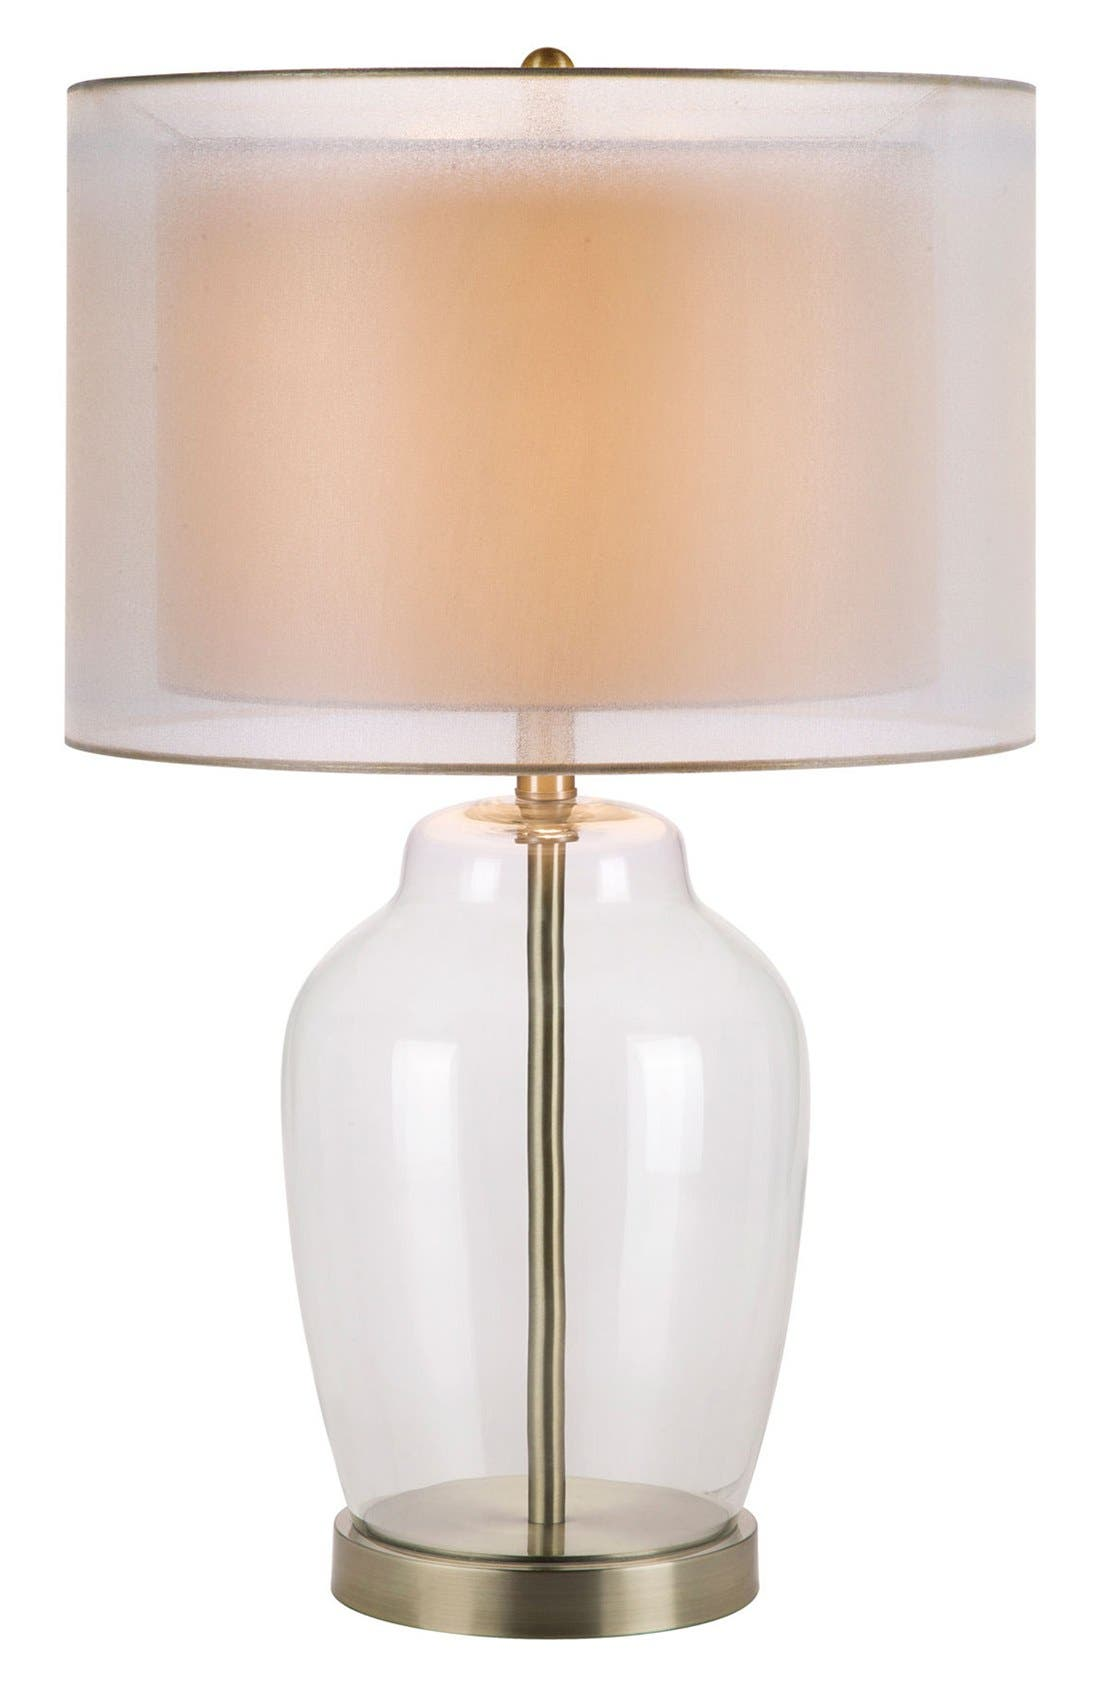 Main Image - JAlexander Clear Glass Table Lamp